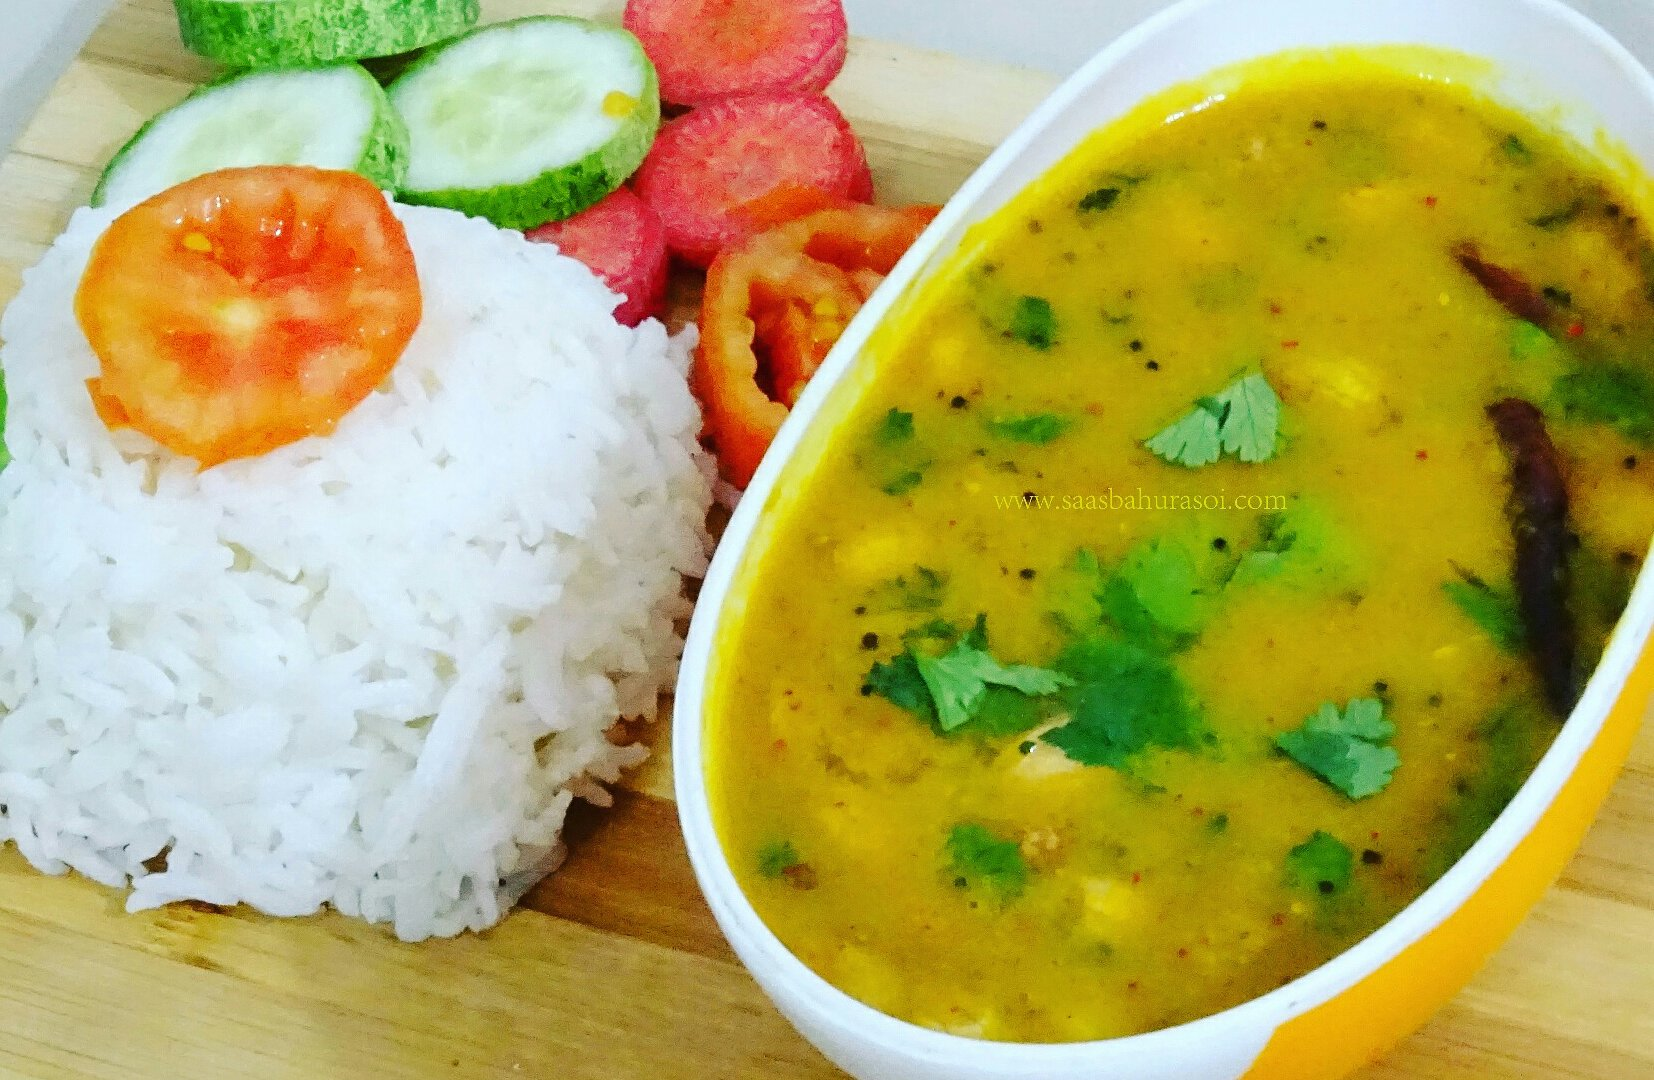 Gujarati style khatti meethi dal recipe indian food gujarati gujarati style khatti meethi dal recipe indian food gujarati recipes forumfinder Images